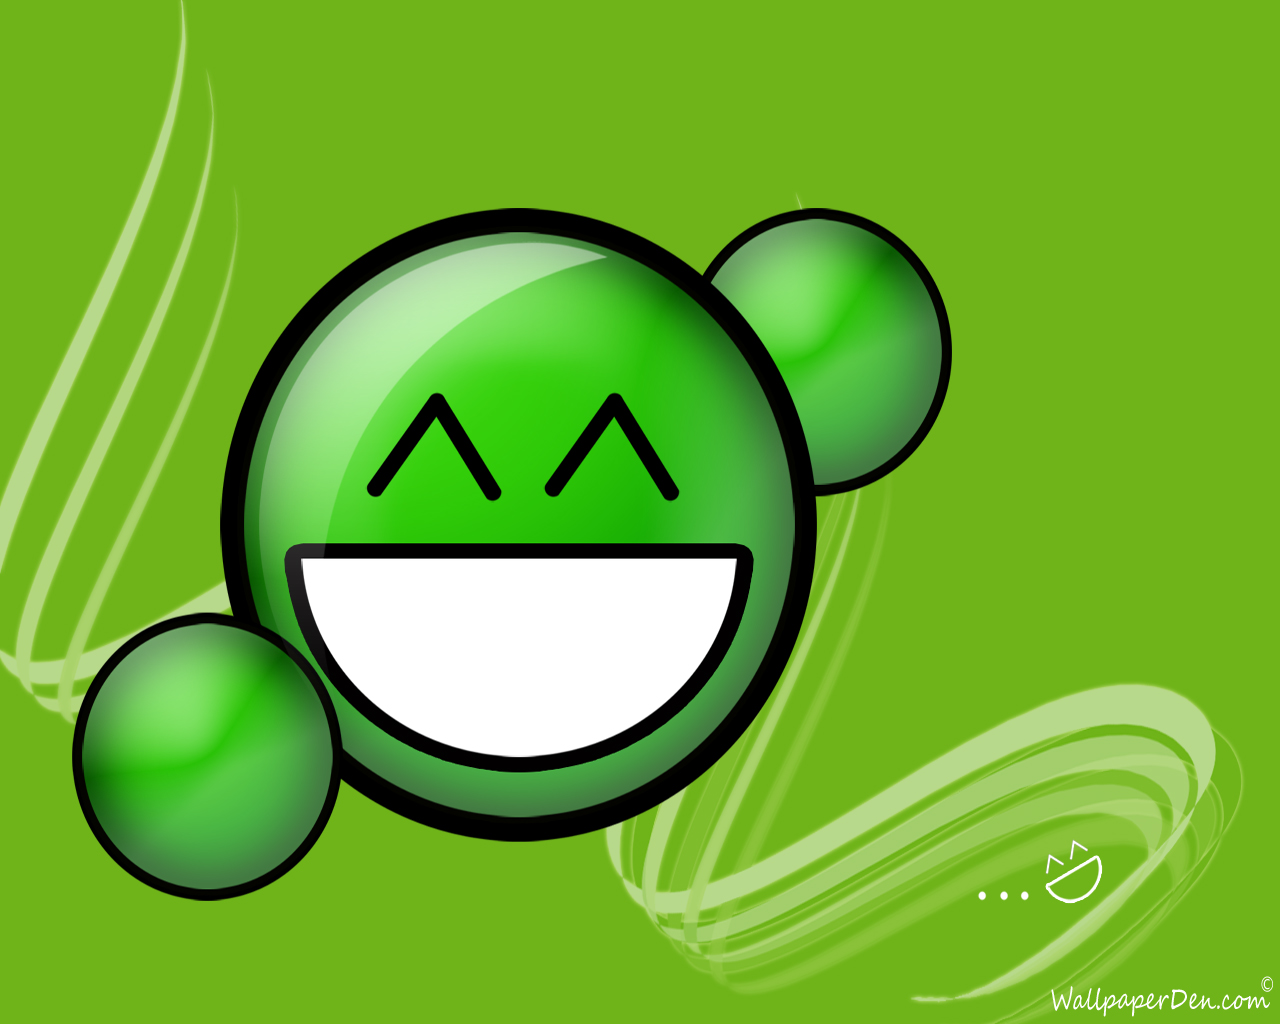 Wallpaper download free - Smile Green Clipart Best